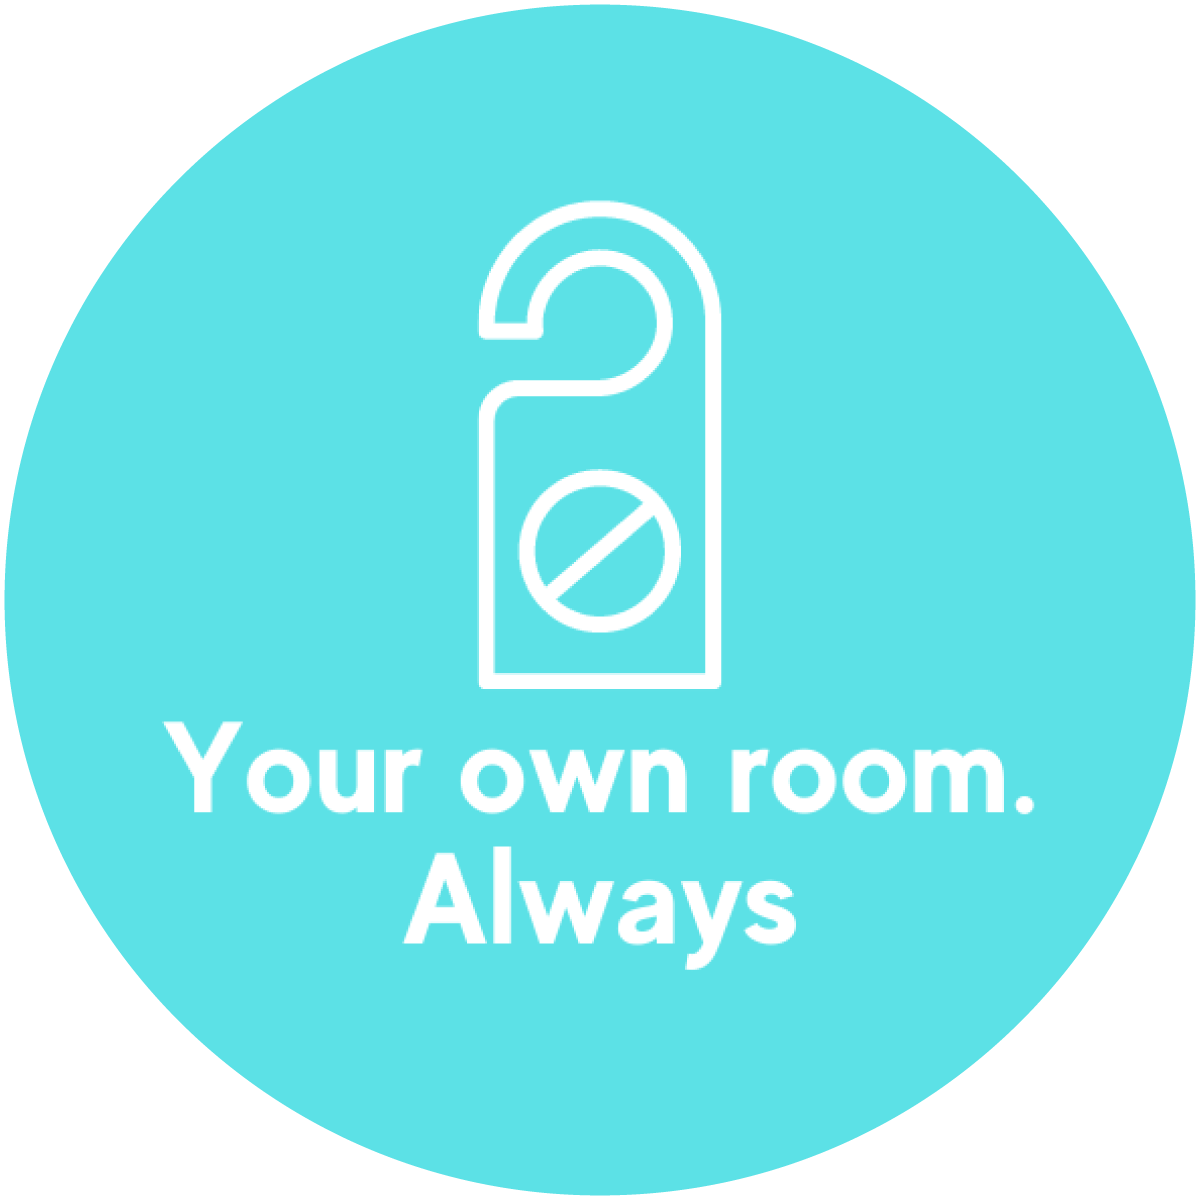 Your own room Always